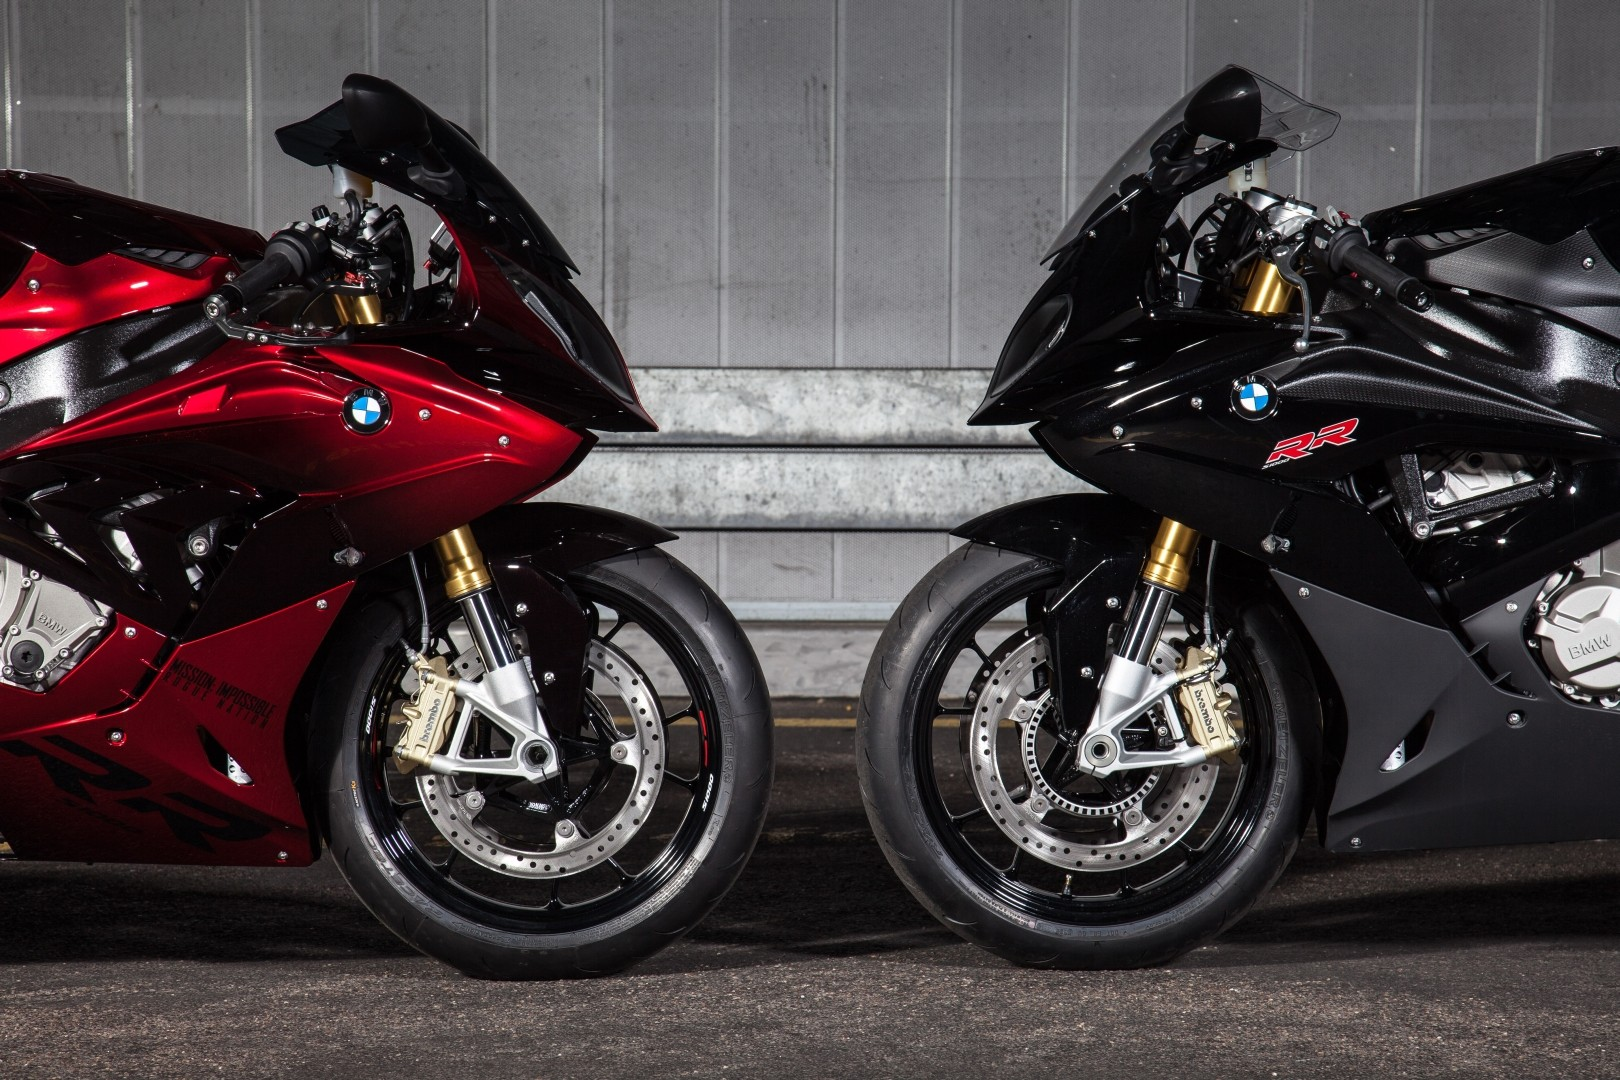 The Making Of Bmw S1000rr Mission Impossible Rogue Nation